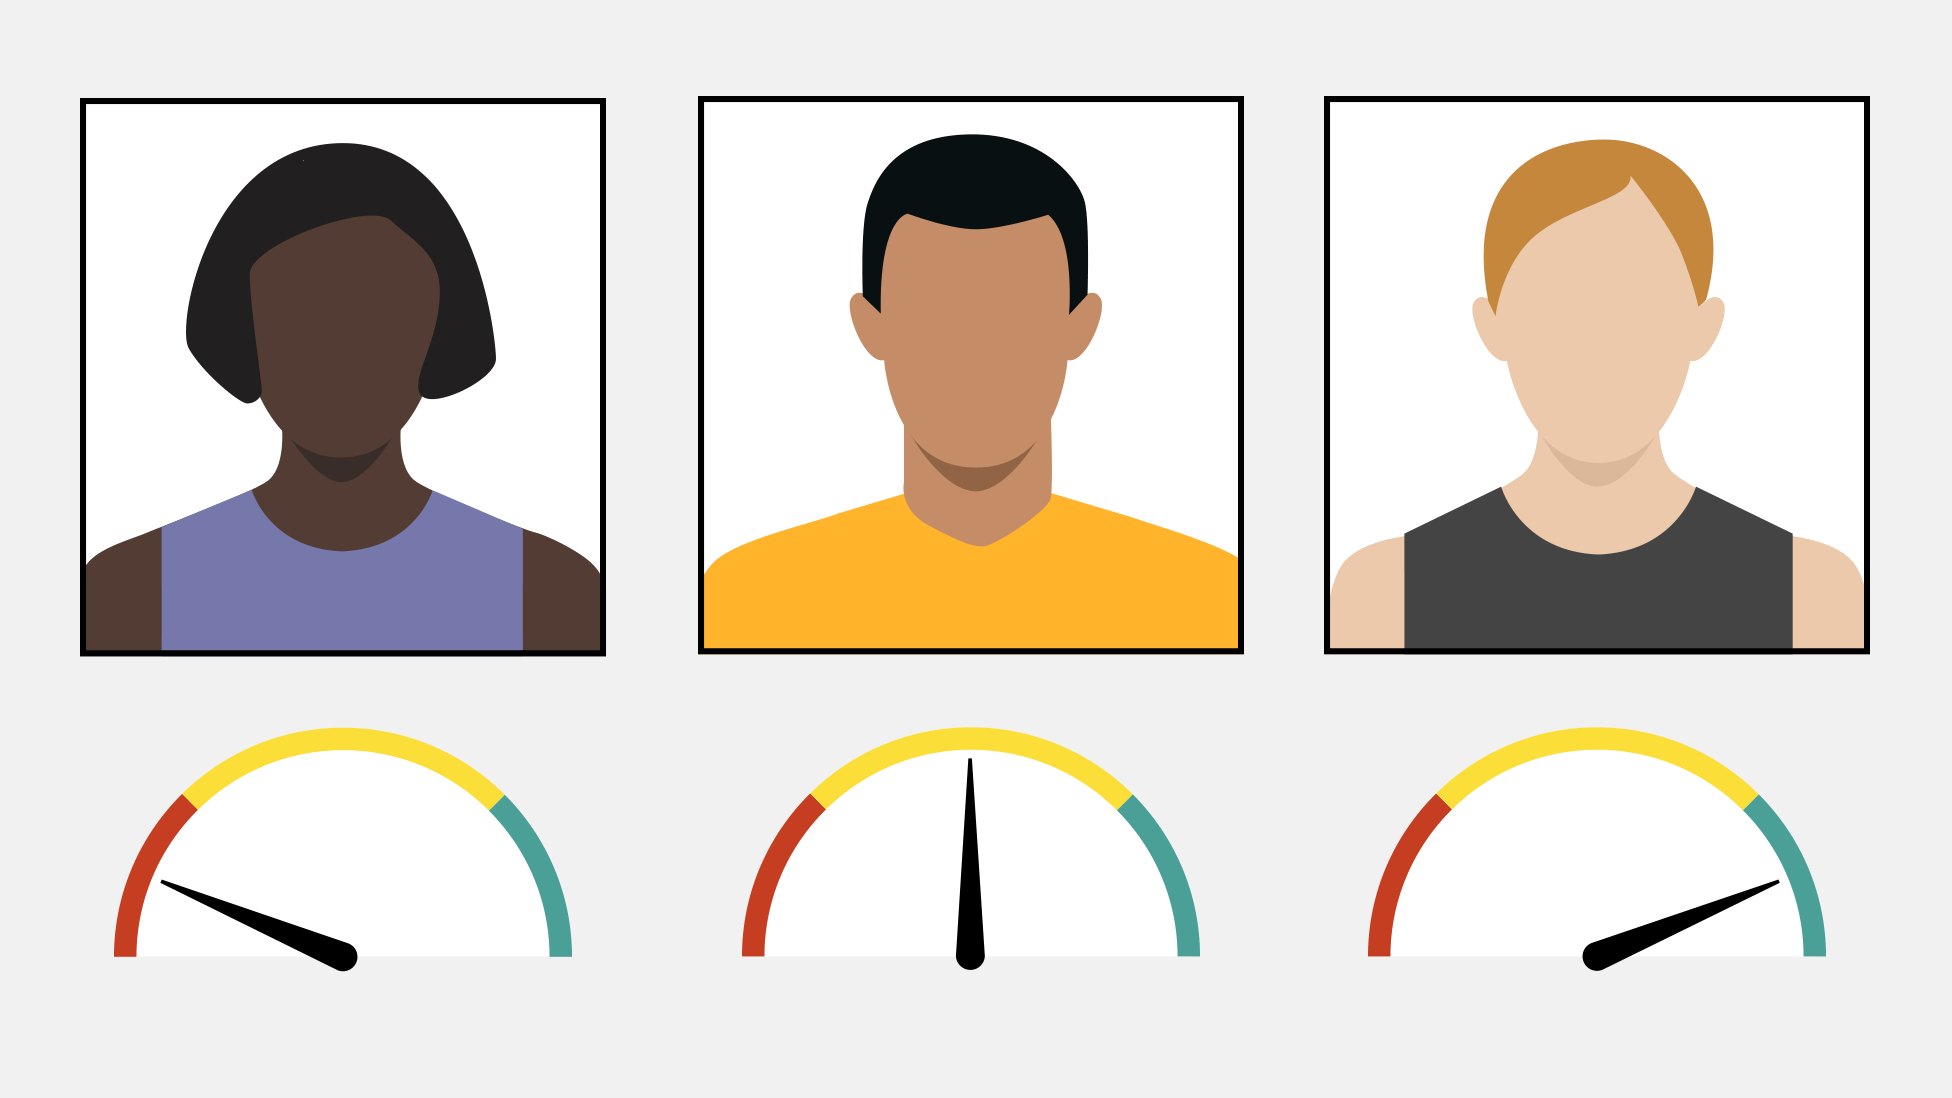 An illustration showing photos of three people with different skin tones. The photo of the darkest skinned person has a poor quality score and the photo of the lightest skinned person has a good quality score